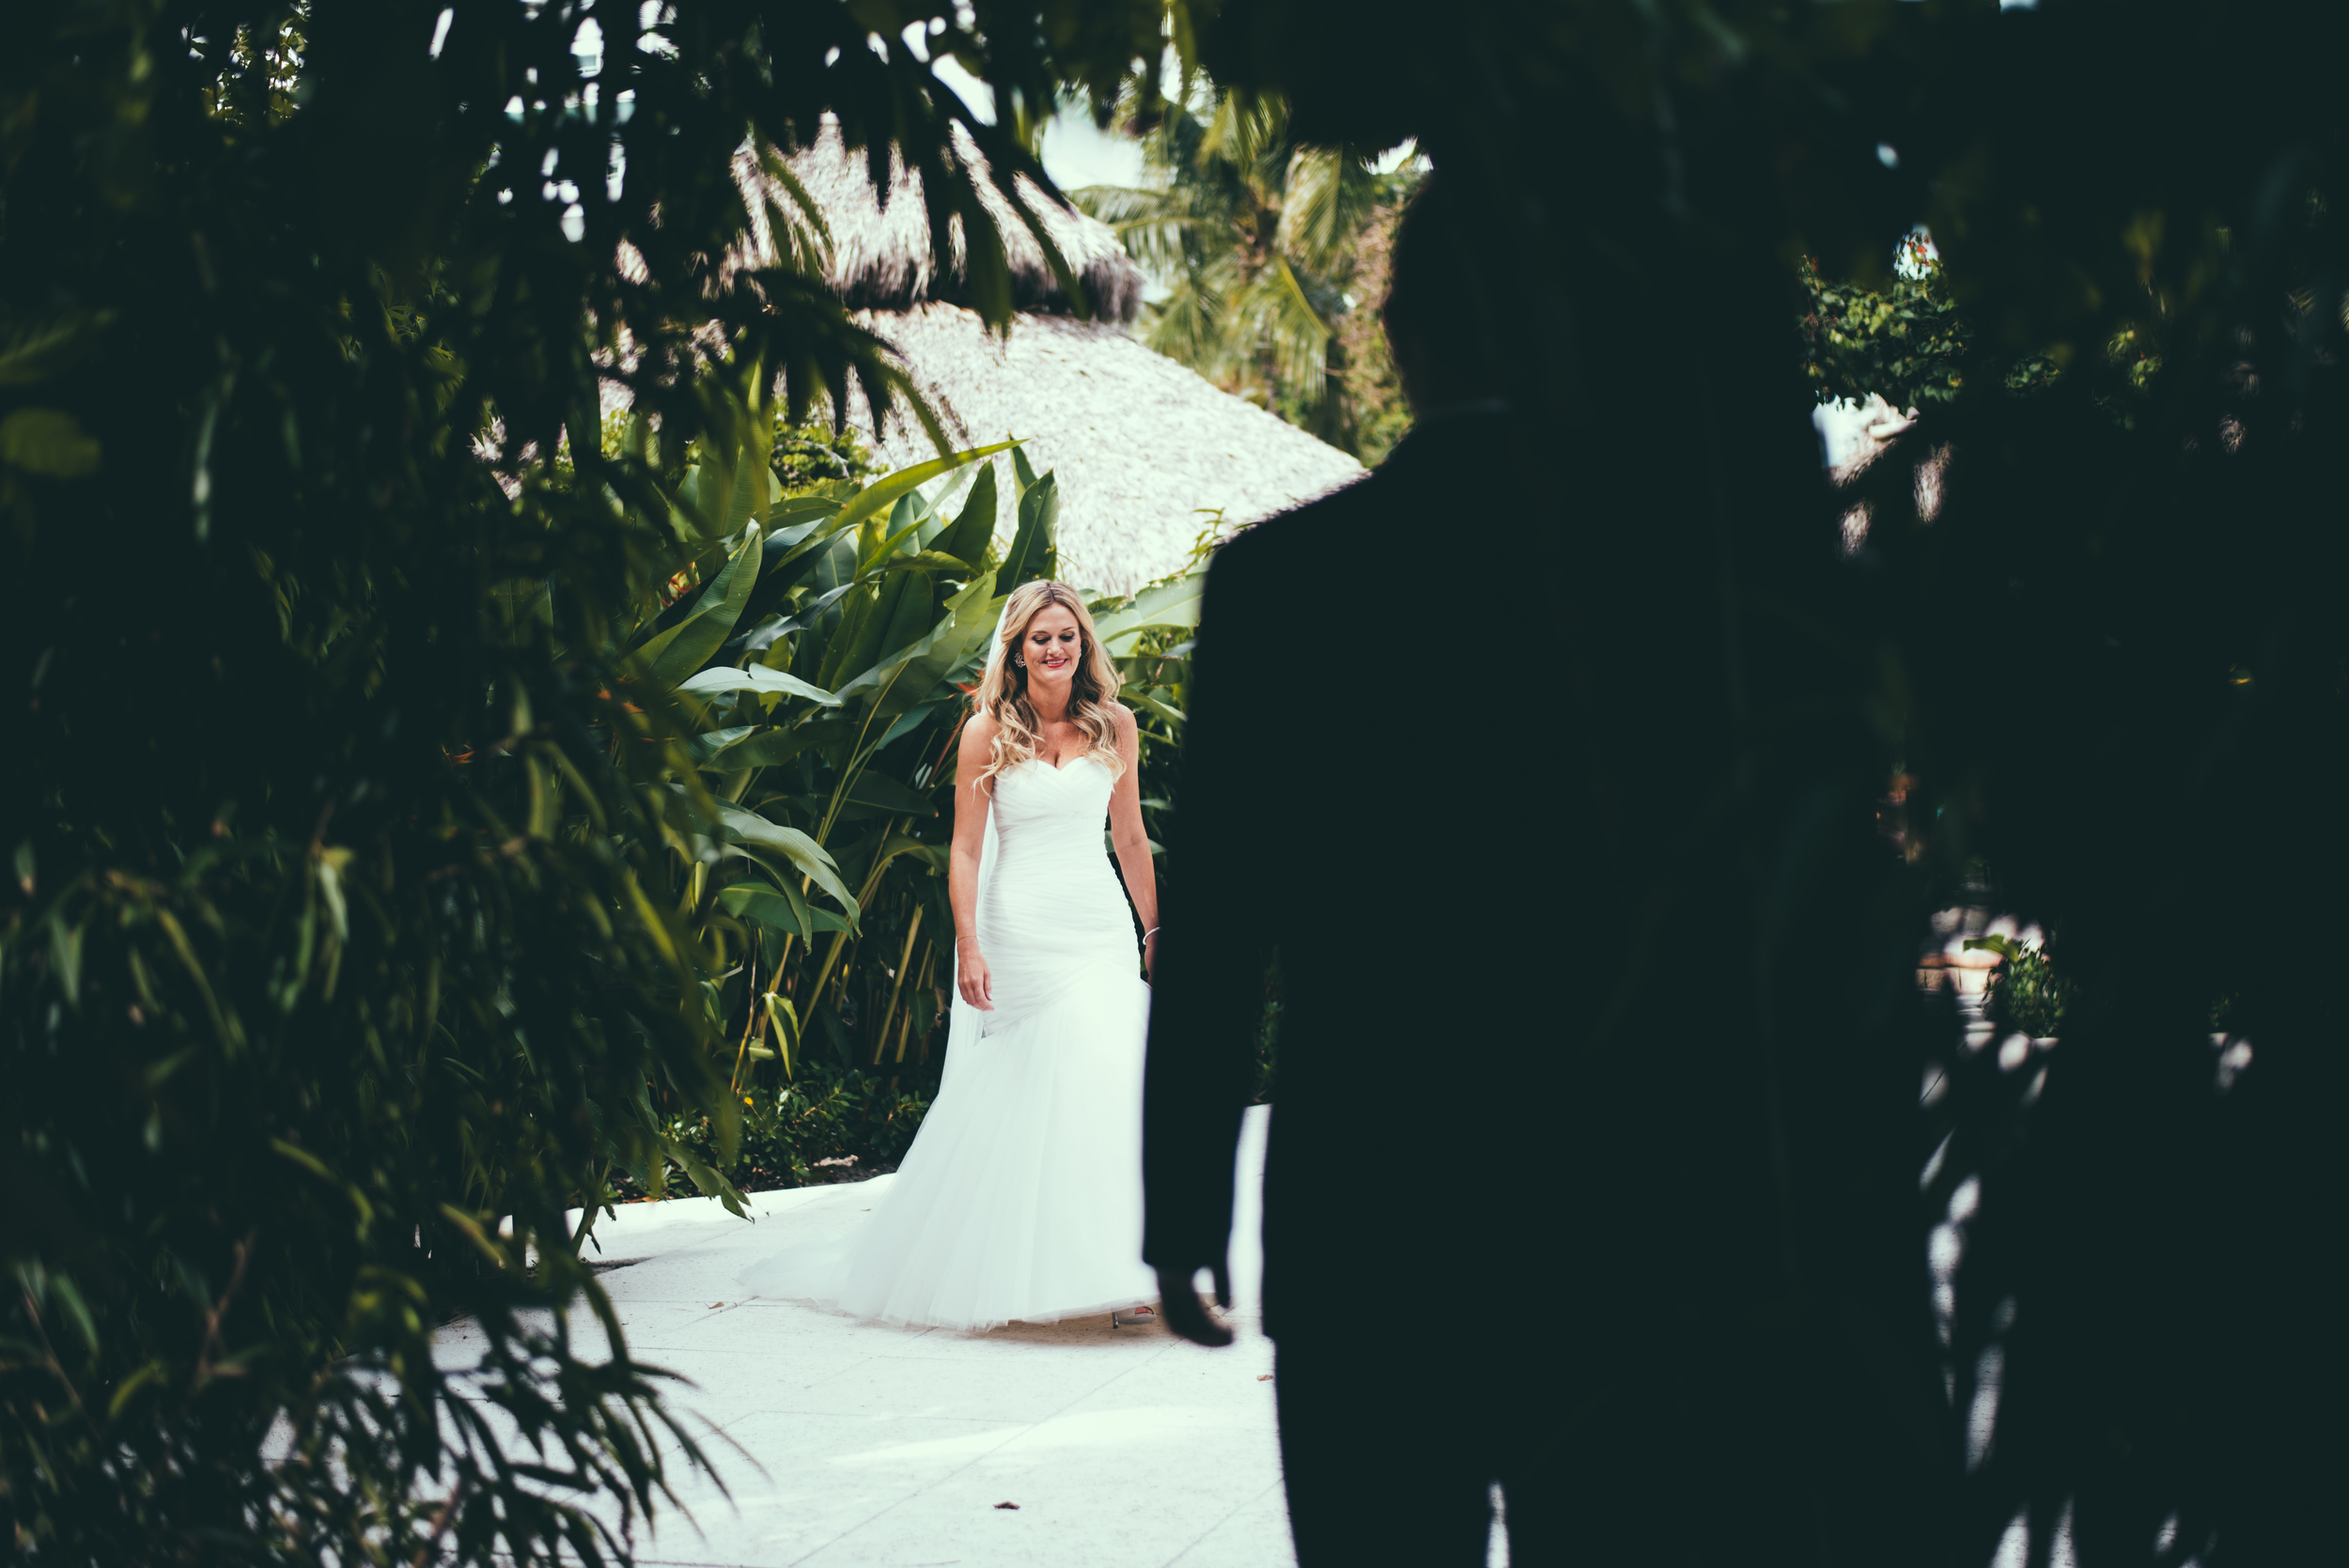 The Palms Hotel & Spa Wedding Miami Florida Photographer First Look Bride Walking 2